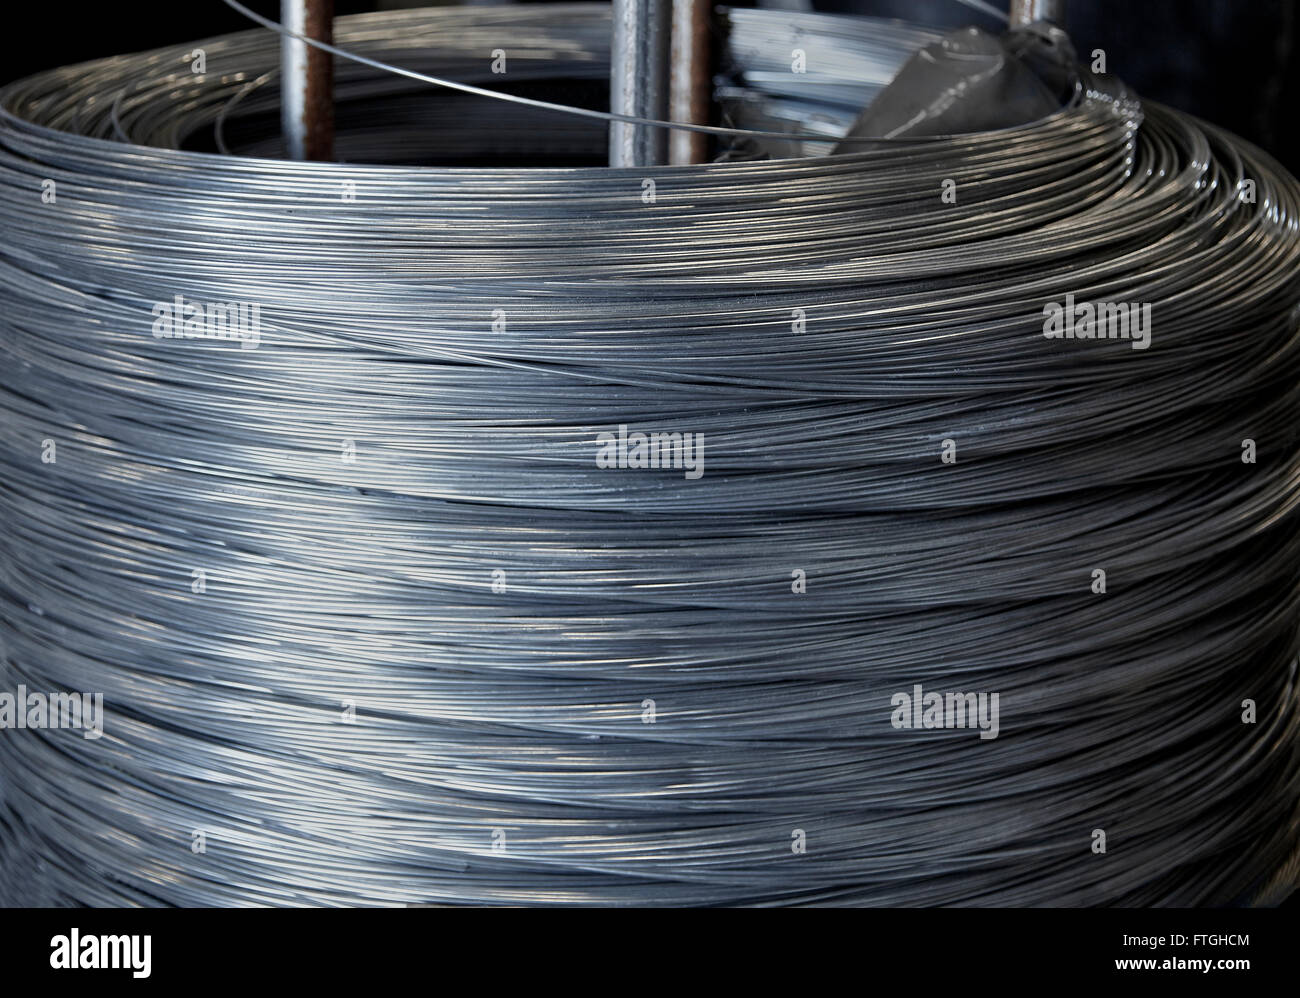 Wire Roll Stock Photos & Wire Roll Stock Images - Alamy